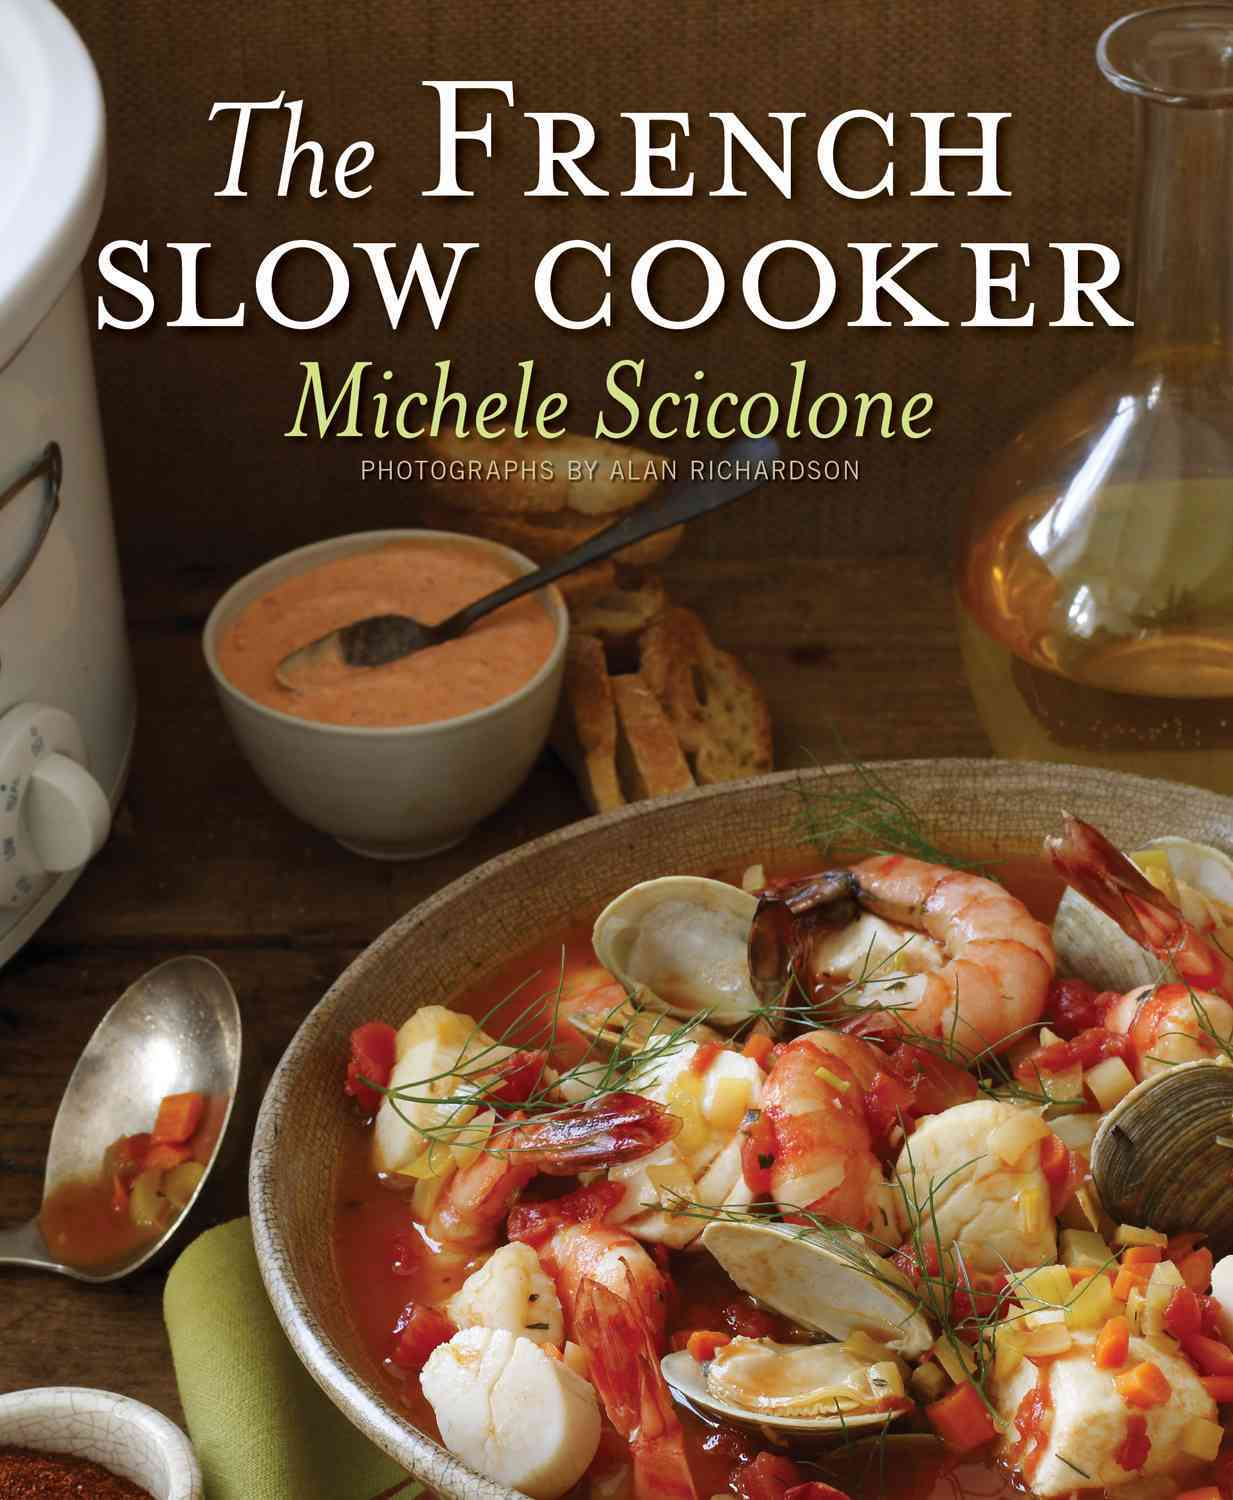 The French Slow Cooker (Paperback)